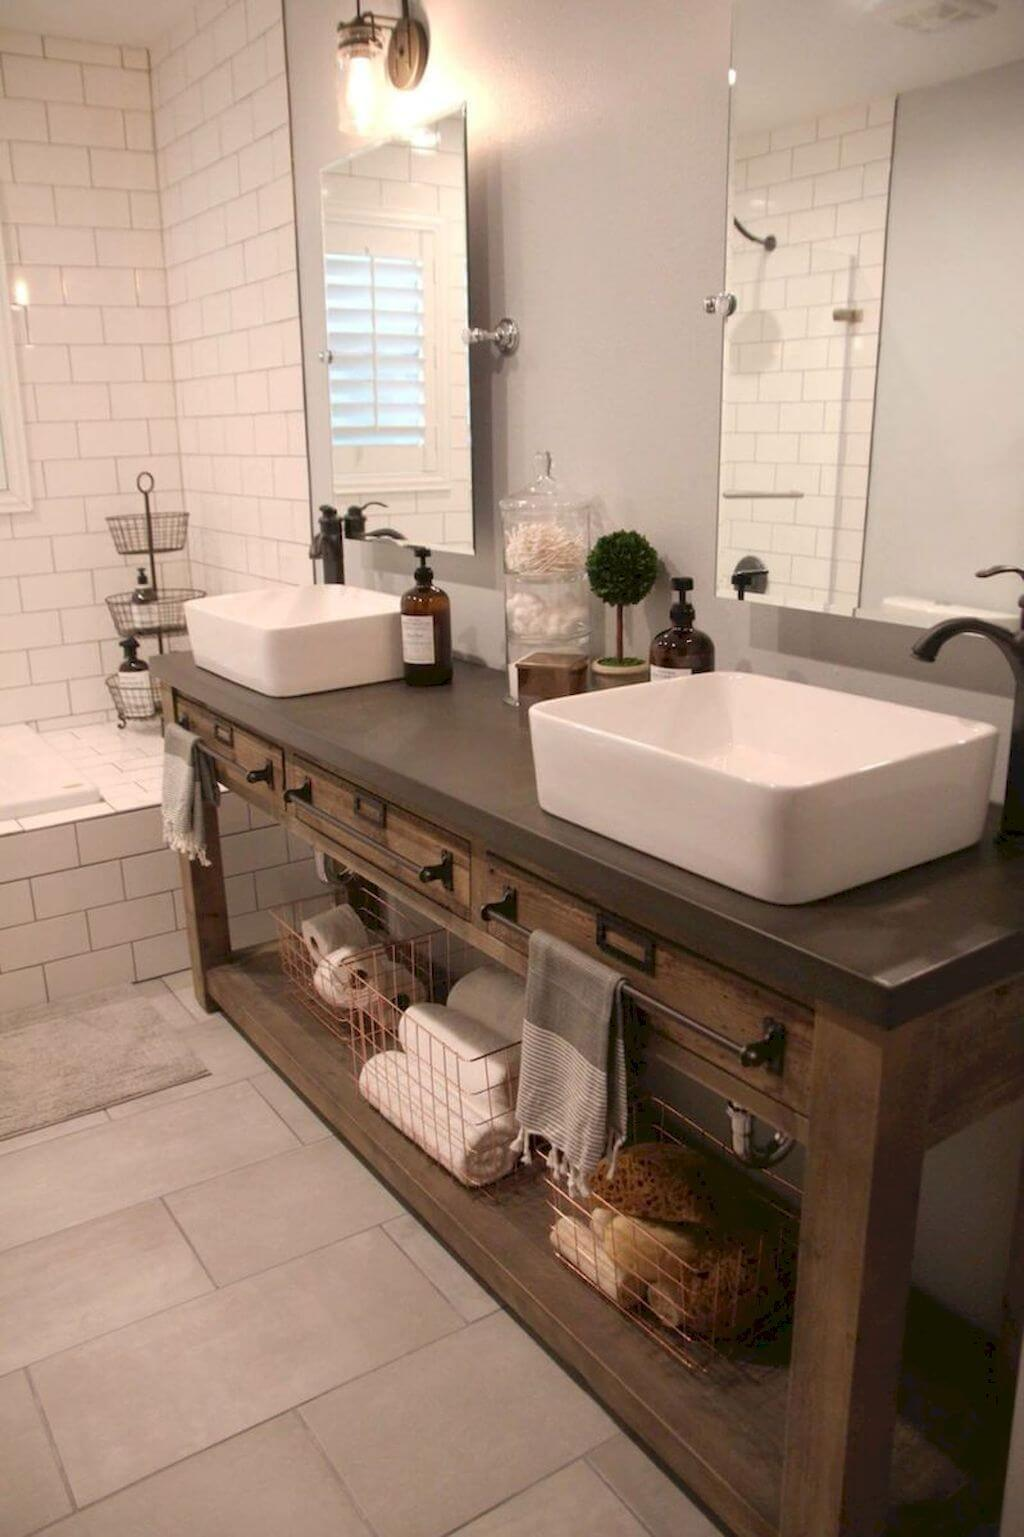 35 Best Rustic Bathroom Vanity Ideas and Designs for 2018 Bathroom Vanity Designs on bathroom sinks, bathroom tub tile drawing, traditional bathroom designs, gold bathroom designs, luxury bathroom designs, small bathroom designs, master bathroom designs, romantic bathroom designs, bathroom vanities, rustic bathroom designs, best bathroom designs, ornate bathroom designs, elegant bathroom designs, bathroom lighting, bath designs, bathroom shower designs, bathroom cabinets, kitchen designs, cabinets designs, bathroom mirror designs,